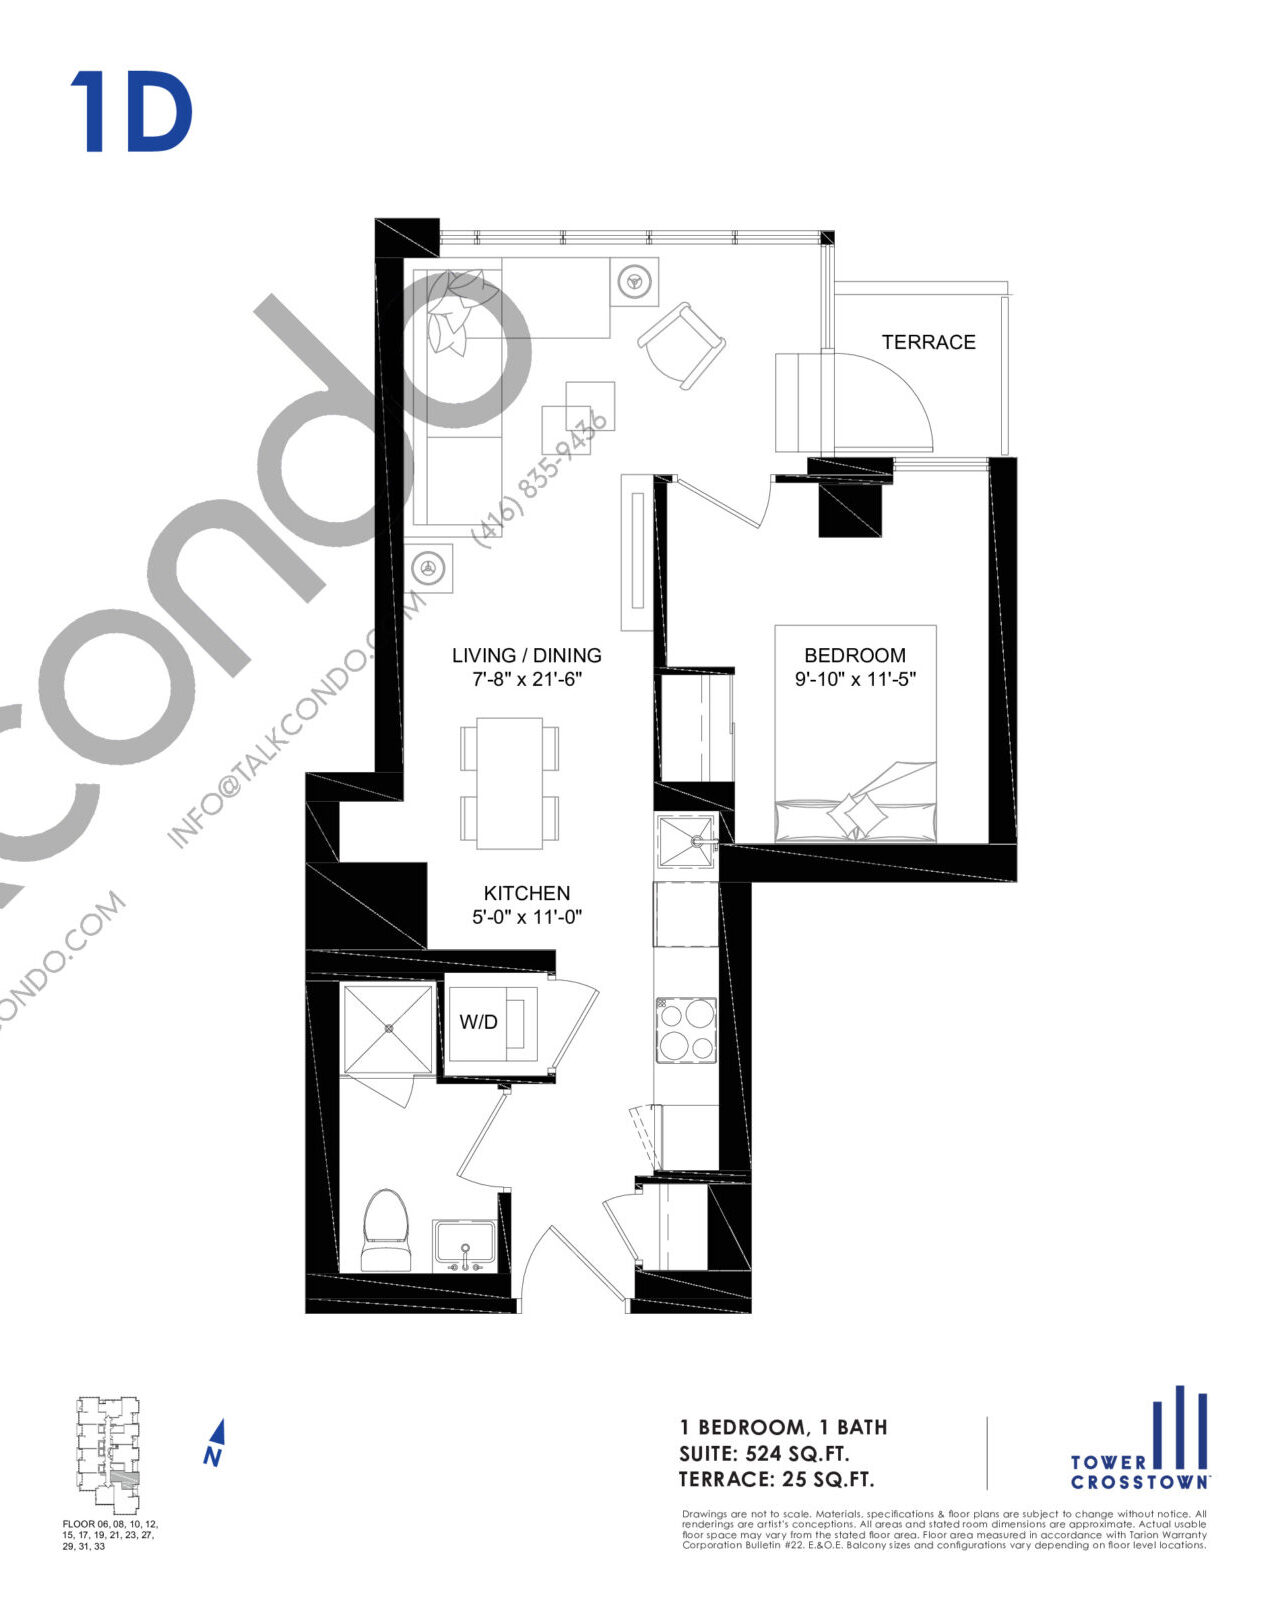 1D Floor Plan at Crosstown Tower 3 Condos - 524 sq.ft